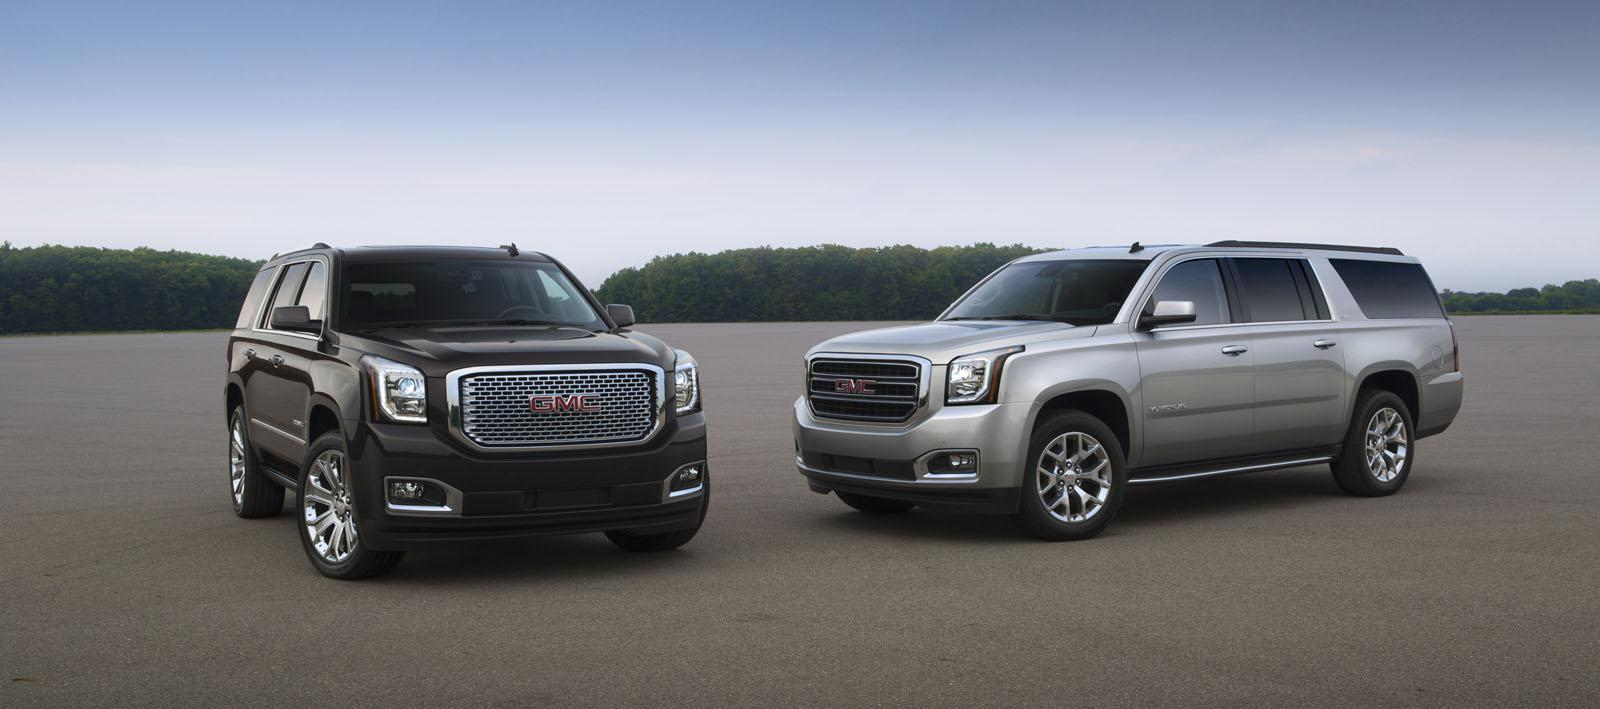 2015 gmc yukon denali yukon xl revealed video autoevolution. Black Bedroom Furniture Sets. Home Design Ideas